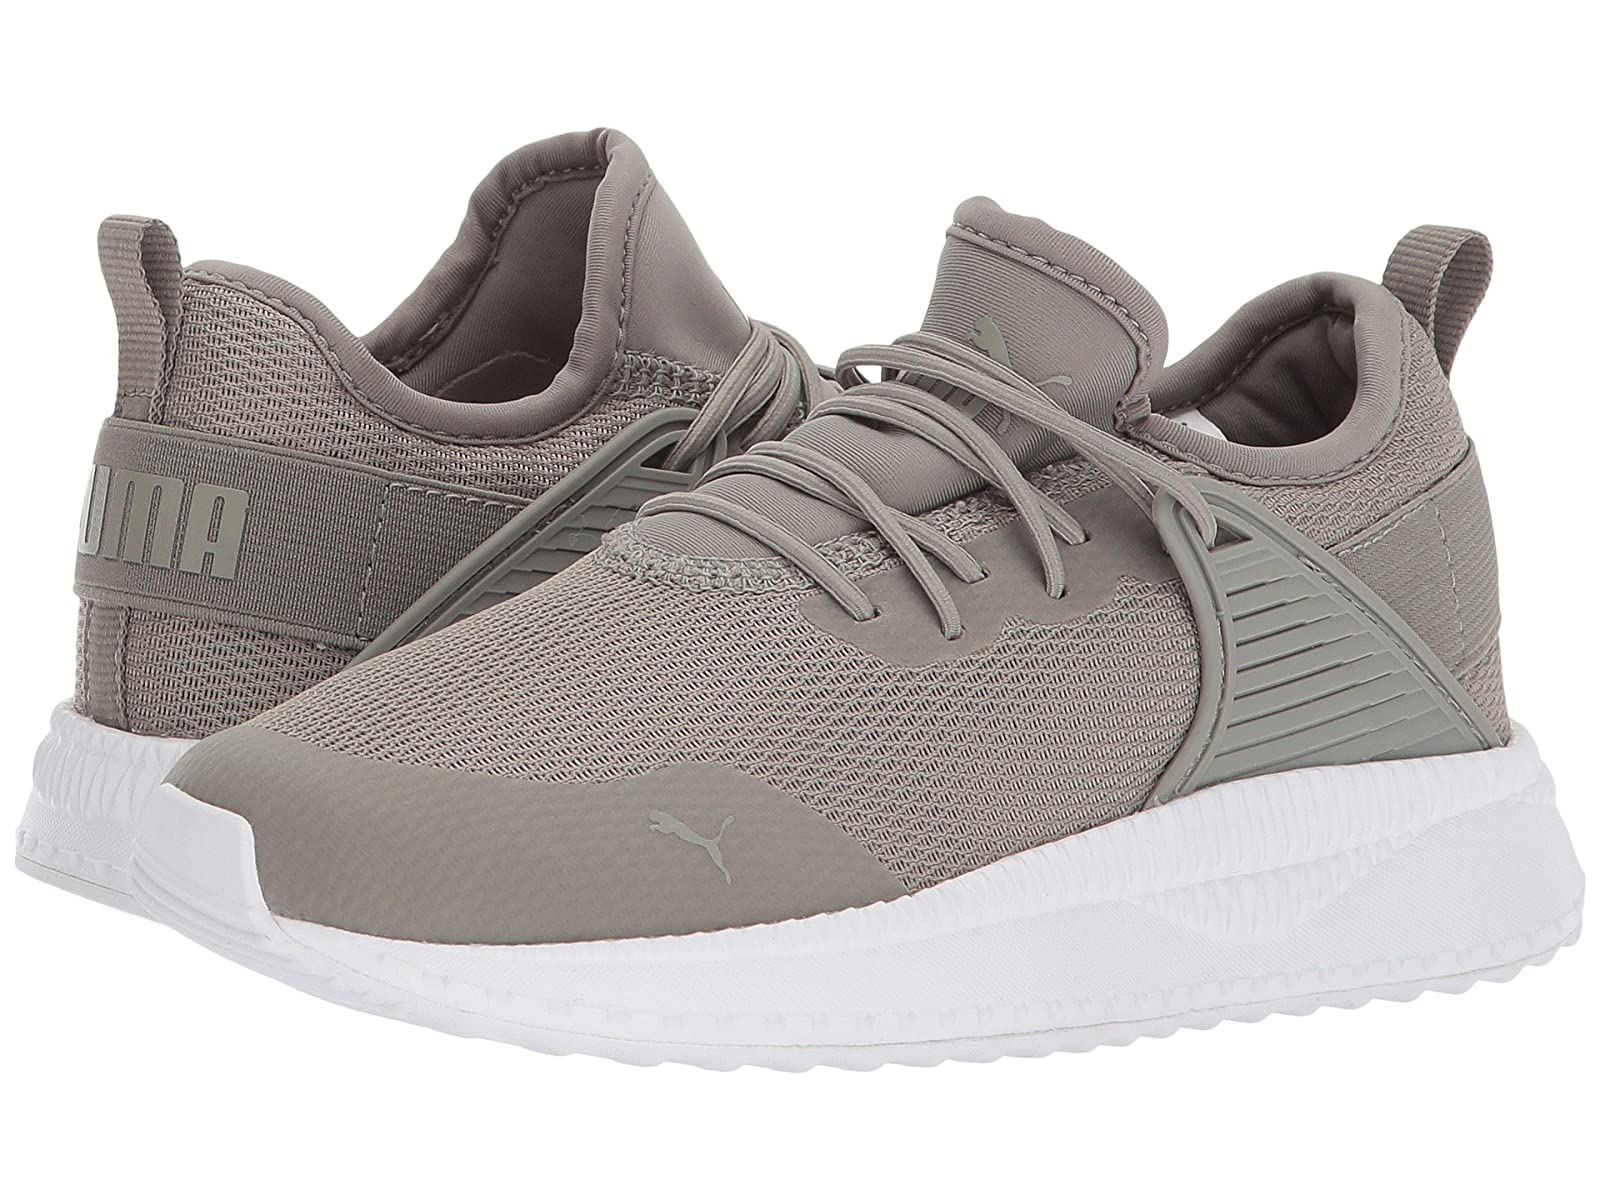 Puma Kids Pacer Next Cage AC (Little Kid)Cheap and distinctive eye-catching shoes